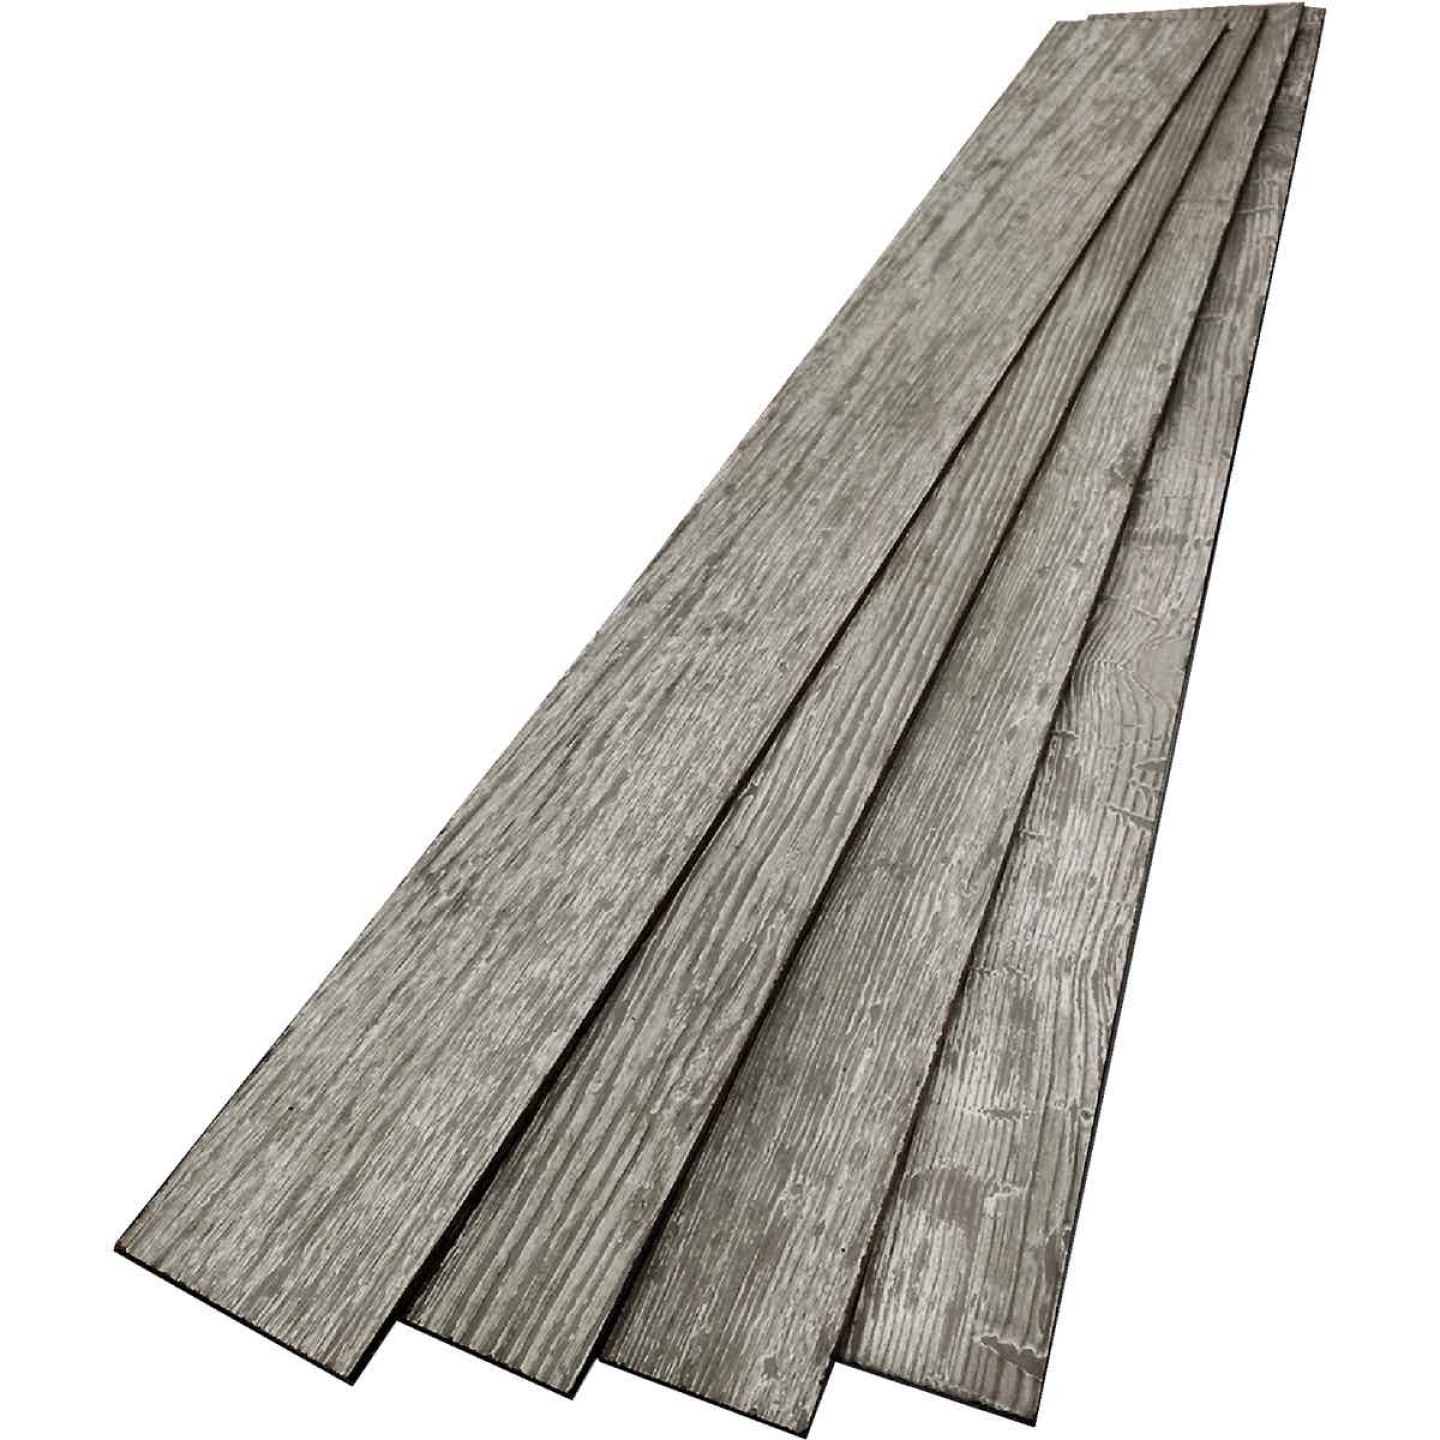 DPI 6 In. W. x 48 In. L. x 1/4 In. Thick Thunder Gray Rustic Wall Plank (12-Pack) Image 3